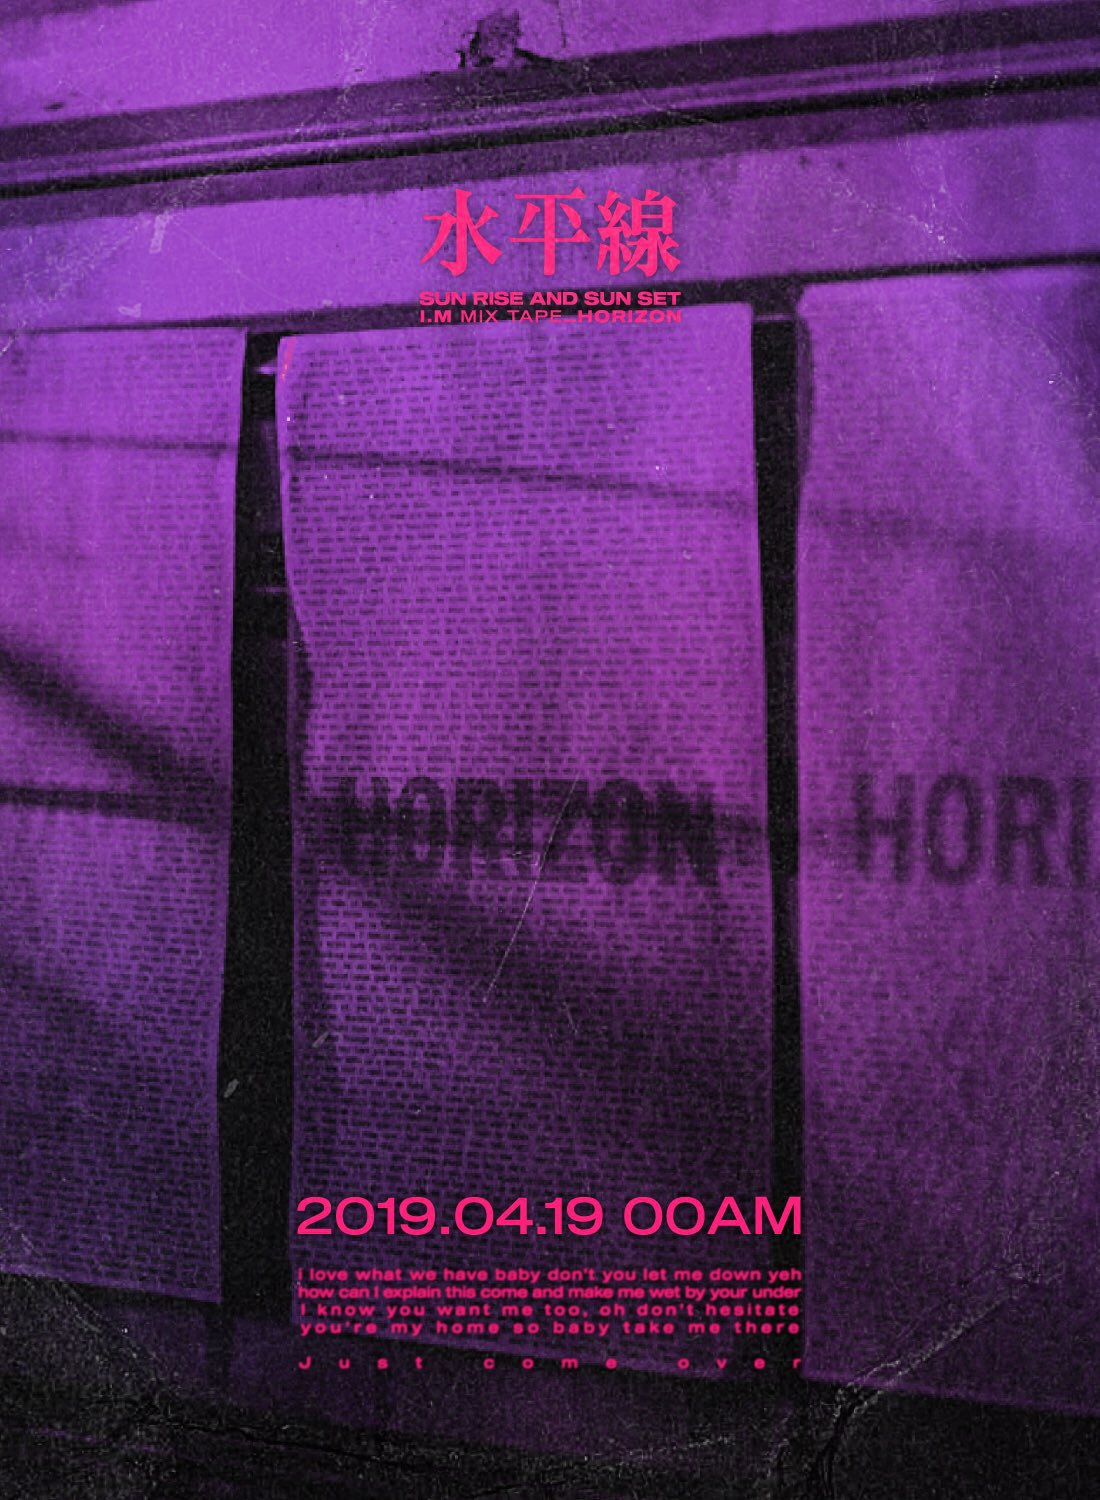 Monsta X star IM explains those 'make me wet' lyrics on Horizon Picture: @OfficialMonstaX METROGRAB https://twitter.com/OfficialMonstaX/status/1117774604213166080